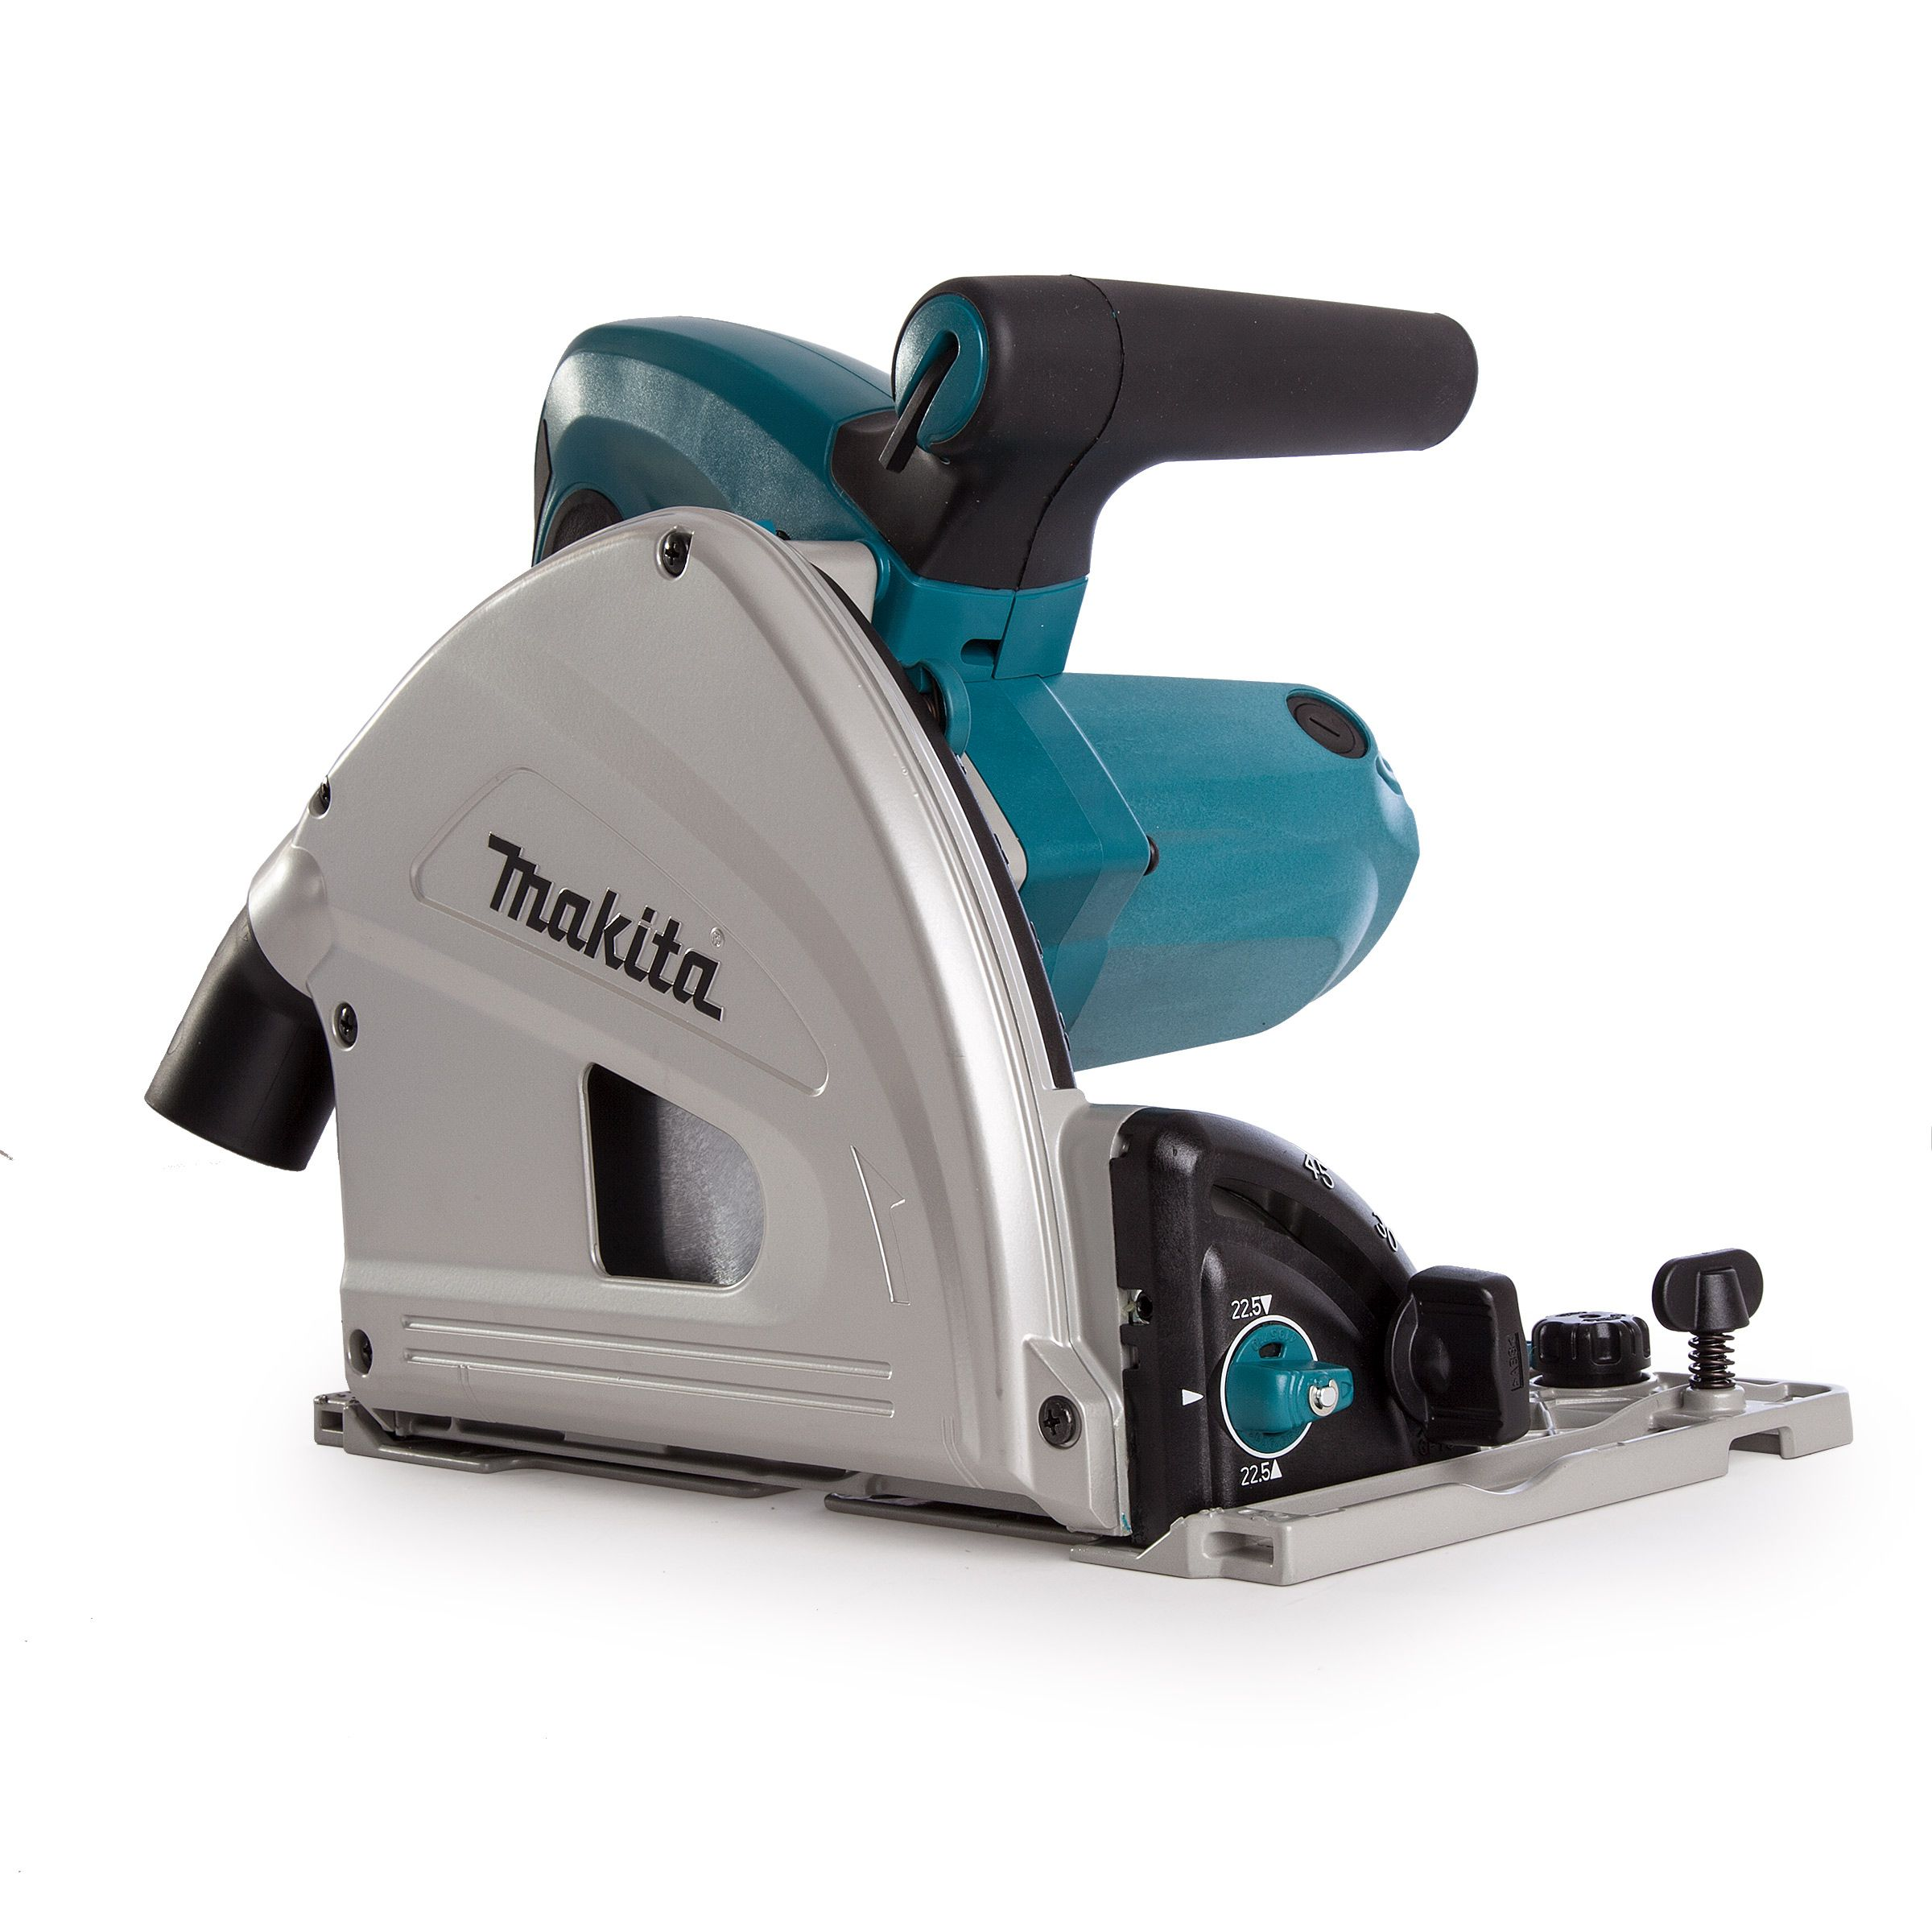 Makita SP6000J1 Review Fabulous Precision and